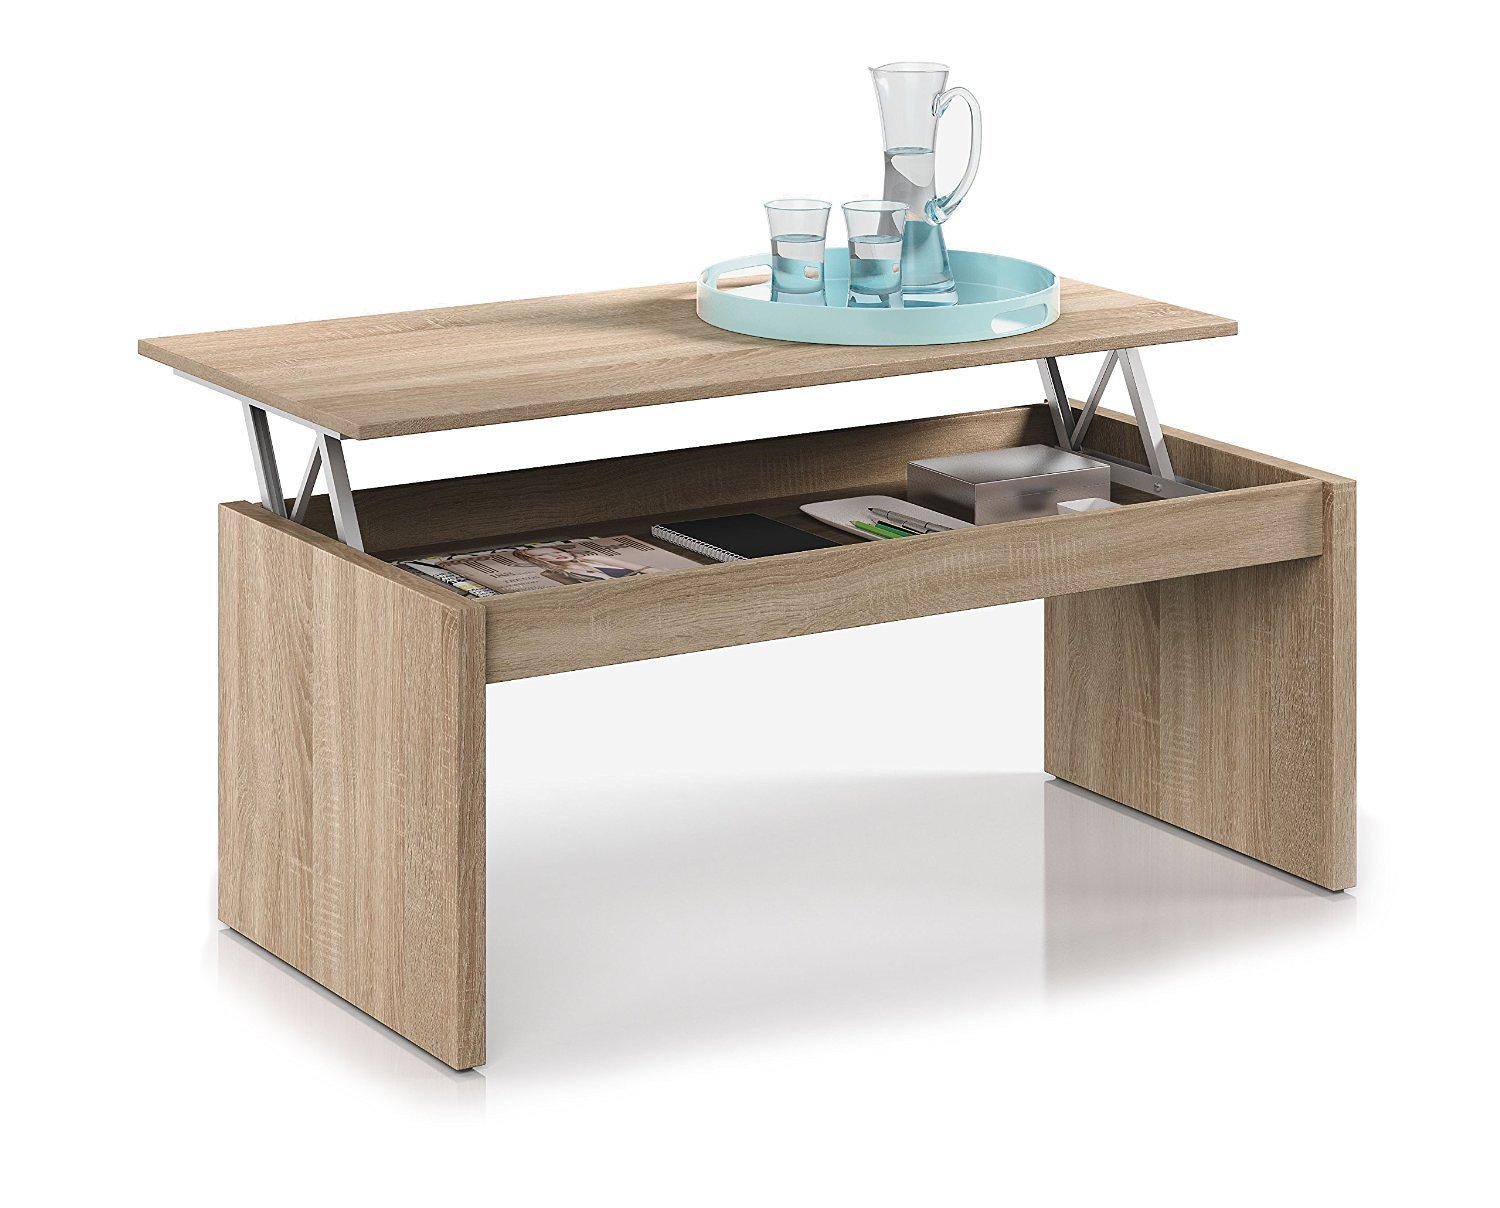 Fabulous habitdesign f table basse chne naturel avec for Table basse petite